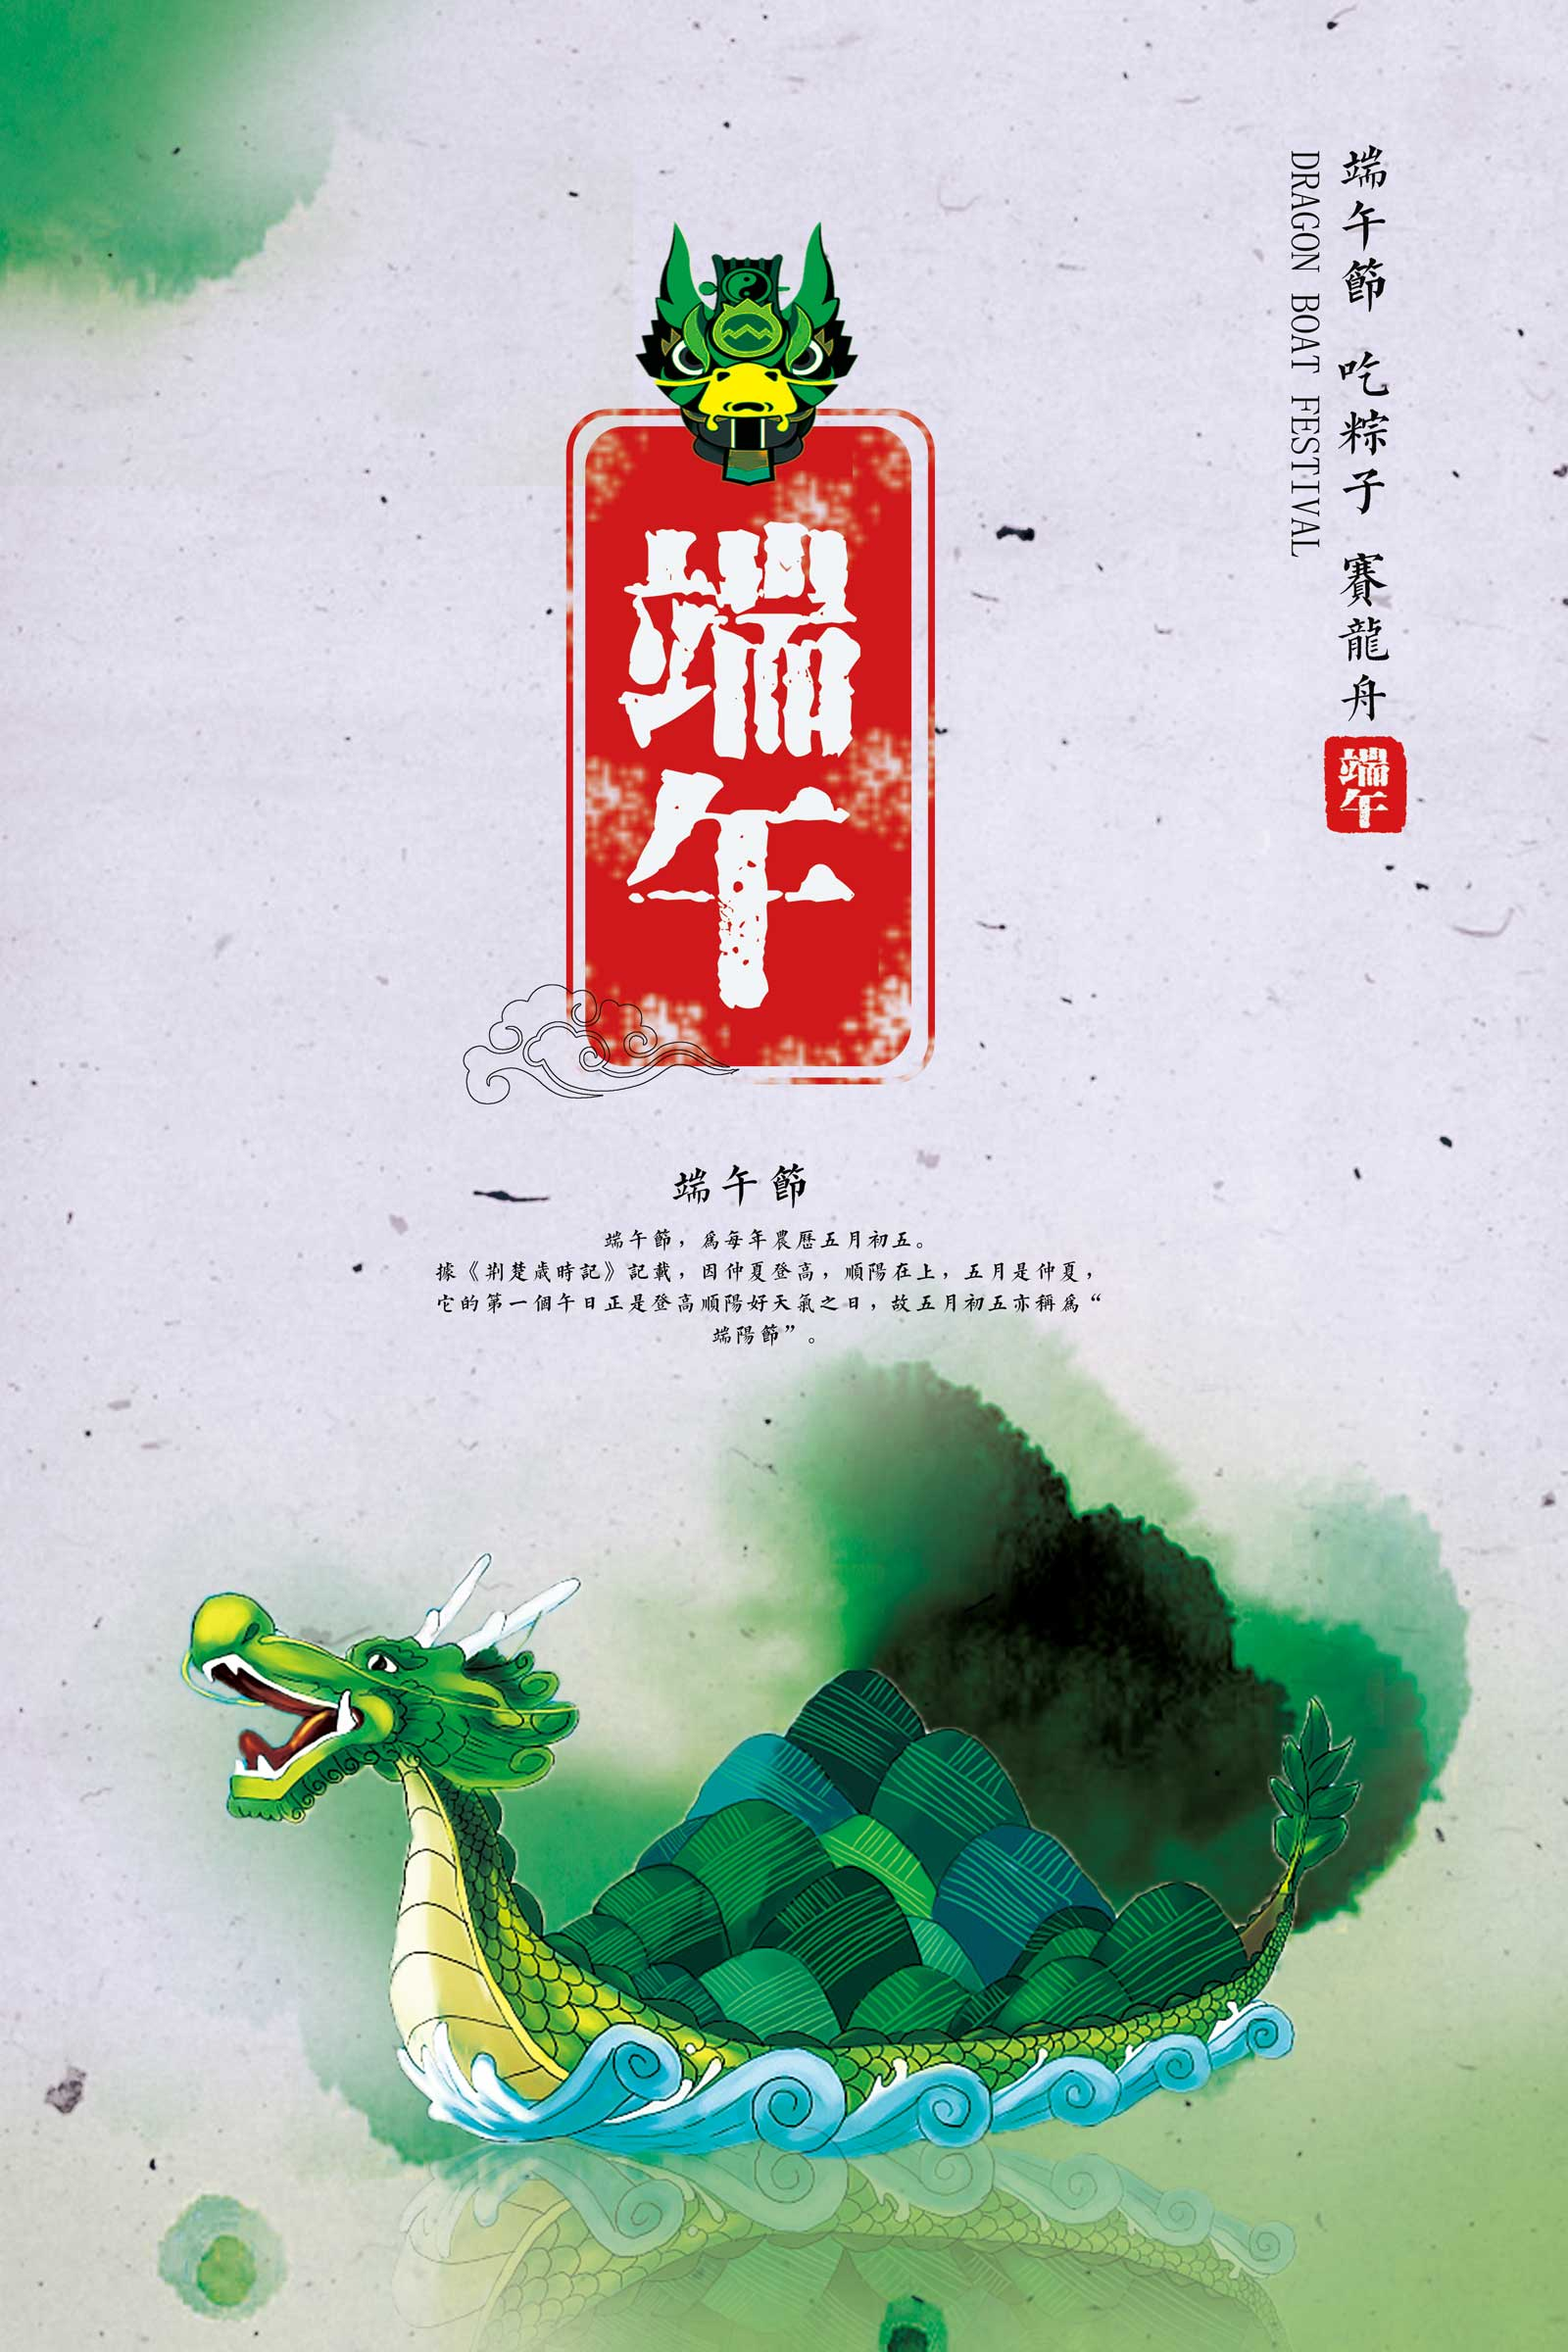 chinesefontdesign.com 2017 03 27 19 26 28 The Dragon Boat Festival A beautiful poster design   China PSD File Free Download The Dragon Boat Festival Dragon Boat Festival PSD Dragon Boat Festival